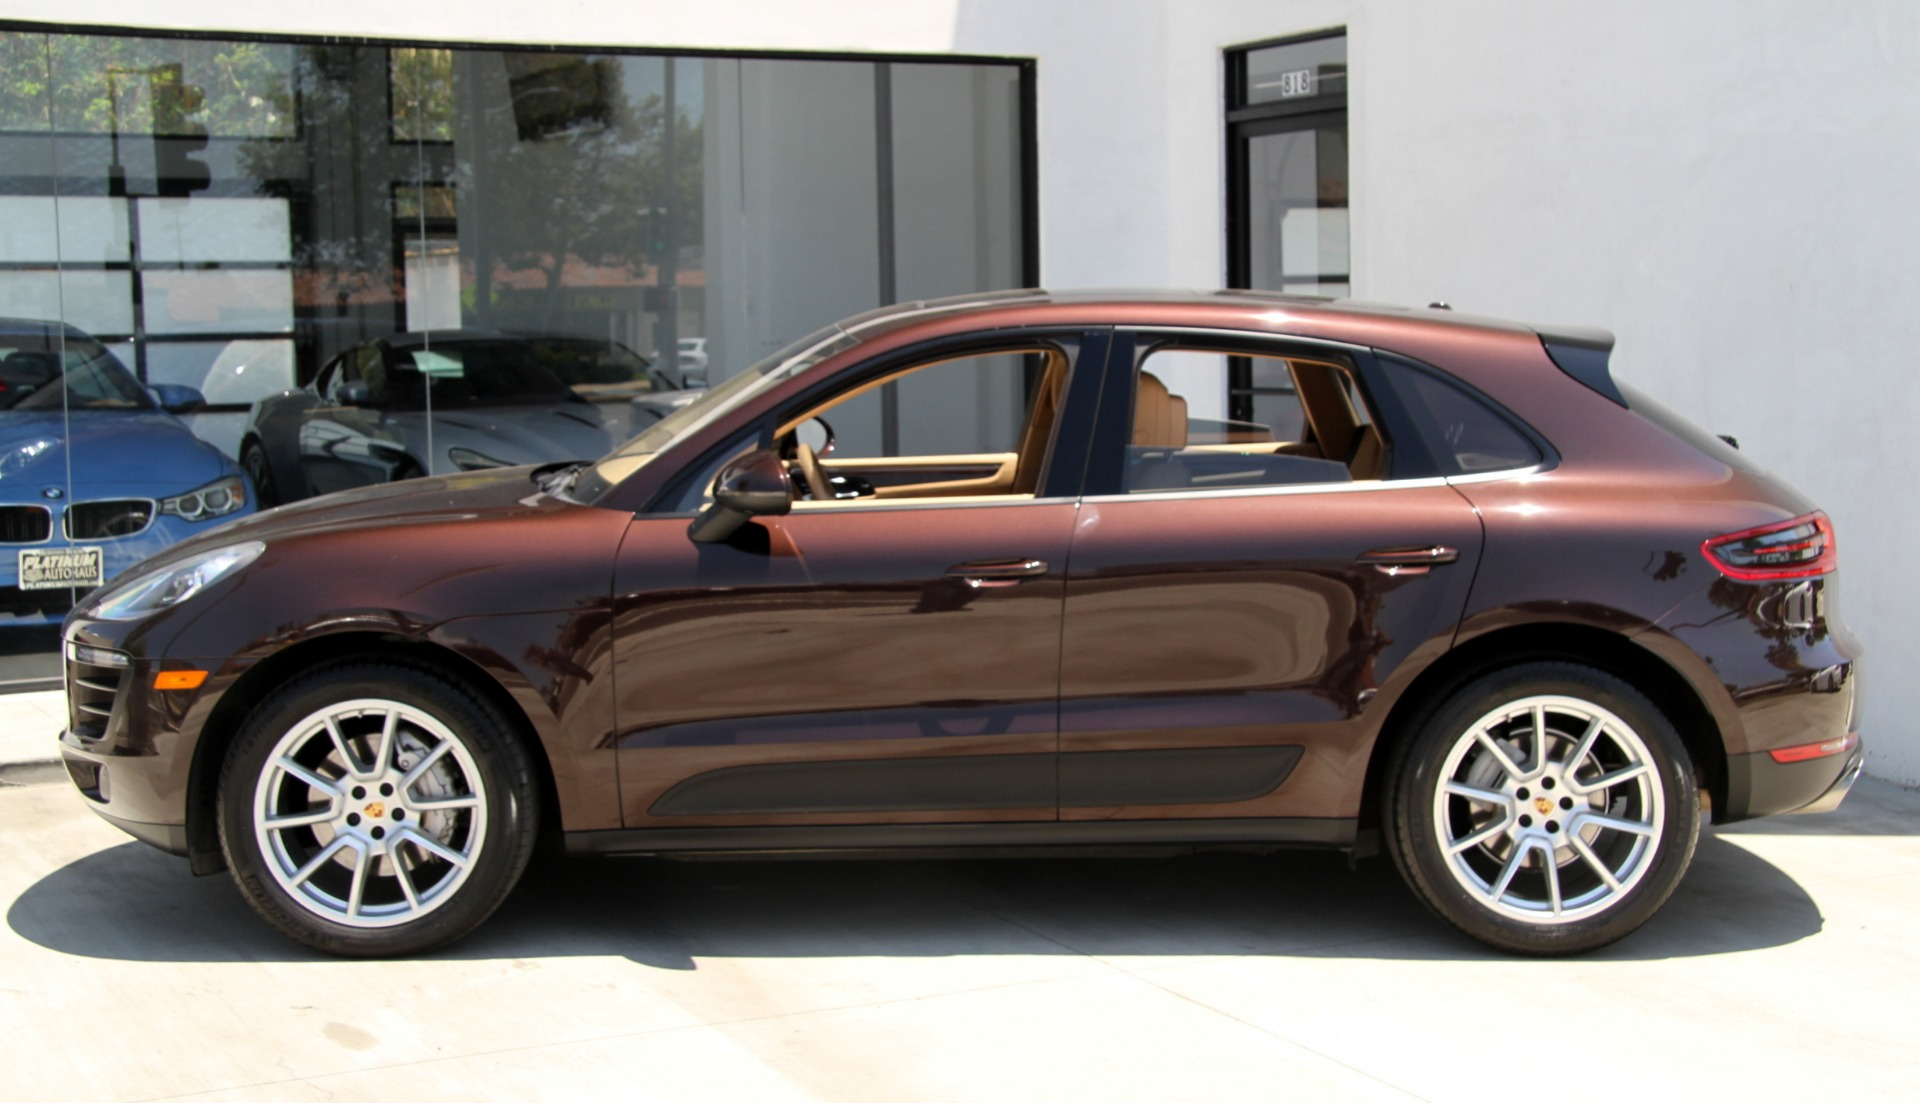 Used Vehicles Near Me >> 2015 Porsche Macan S Stock # 6221 for sale near Redondo ...